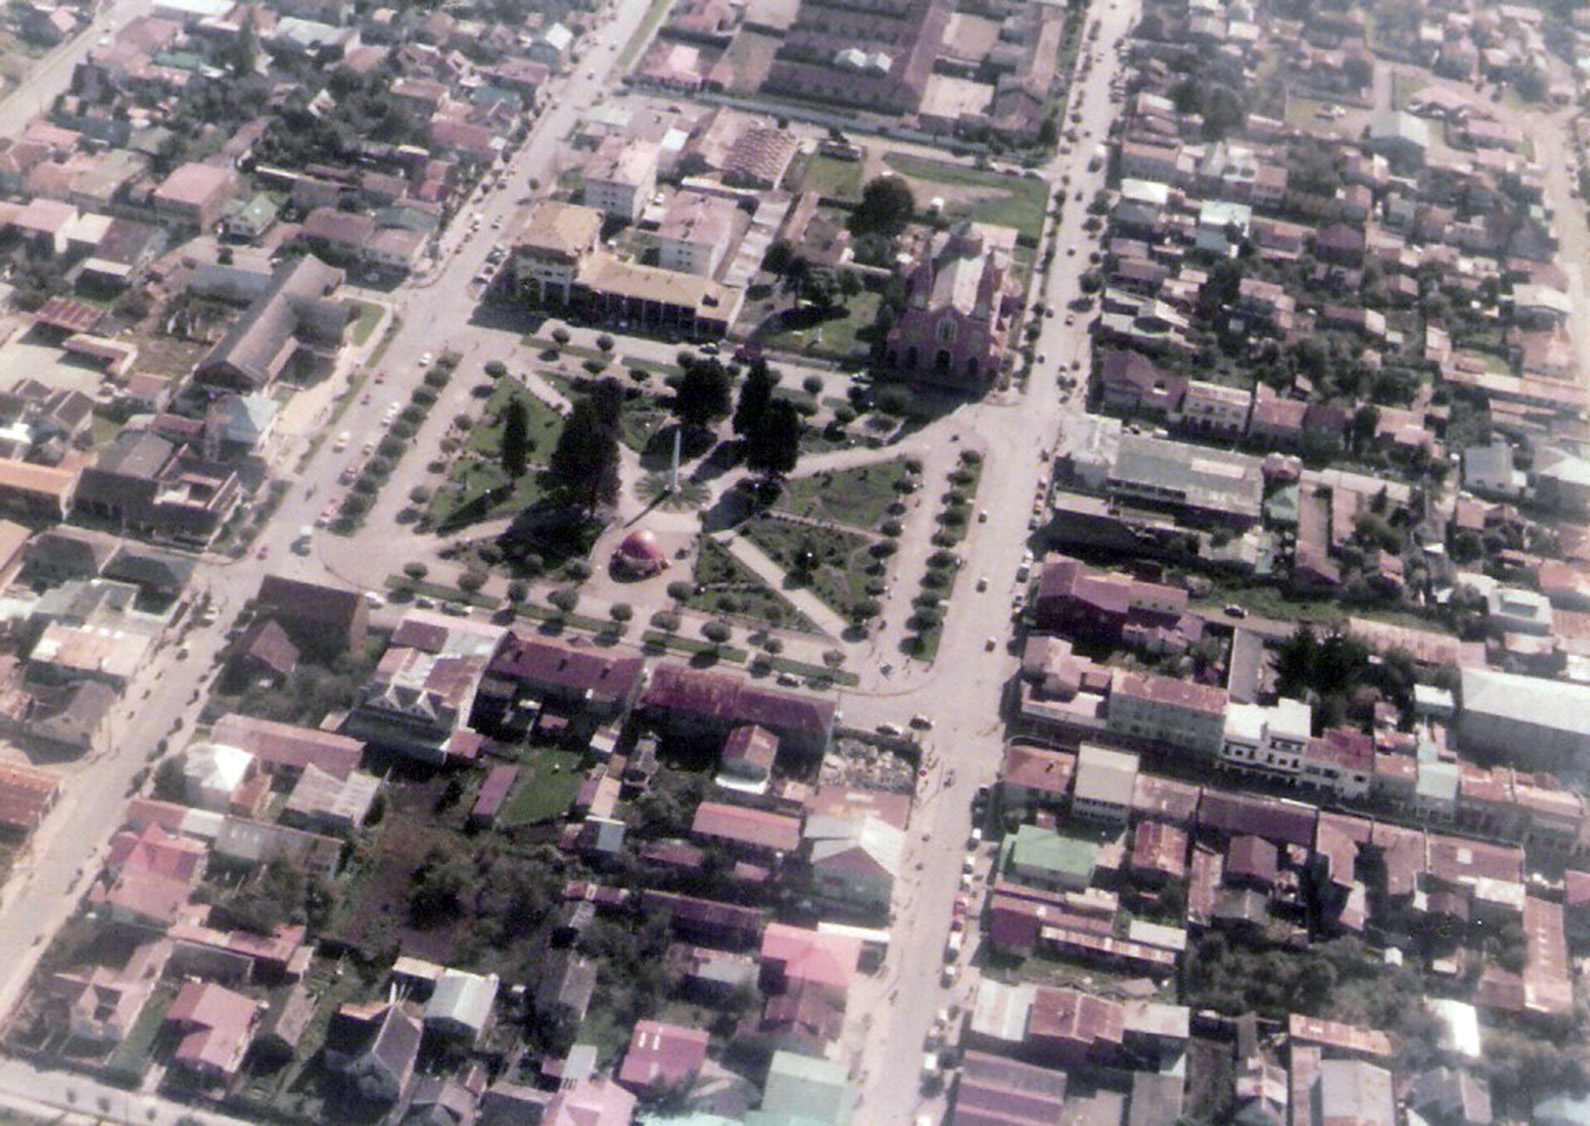 Enterreno - Fotos históricas de chile - fotos antiguas de Chile - Vista aérea de la plaza de Castro en 1983